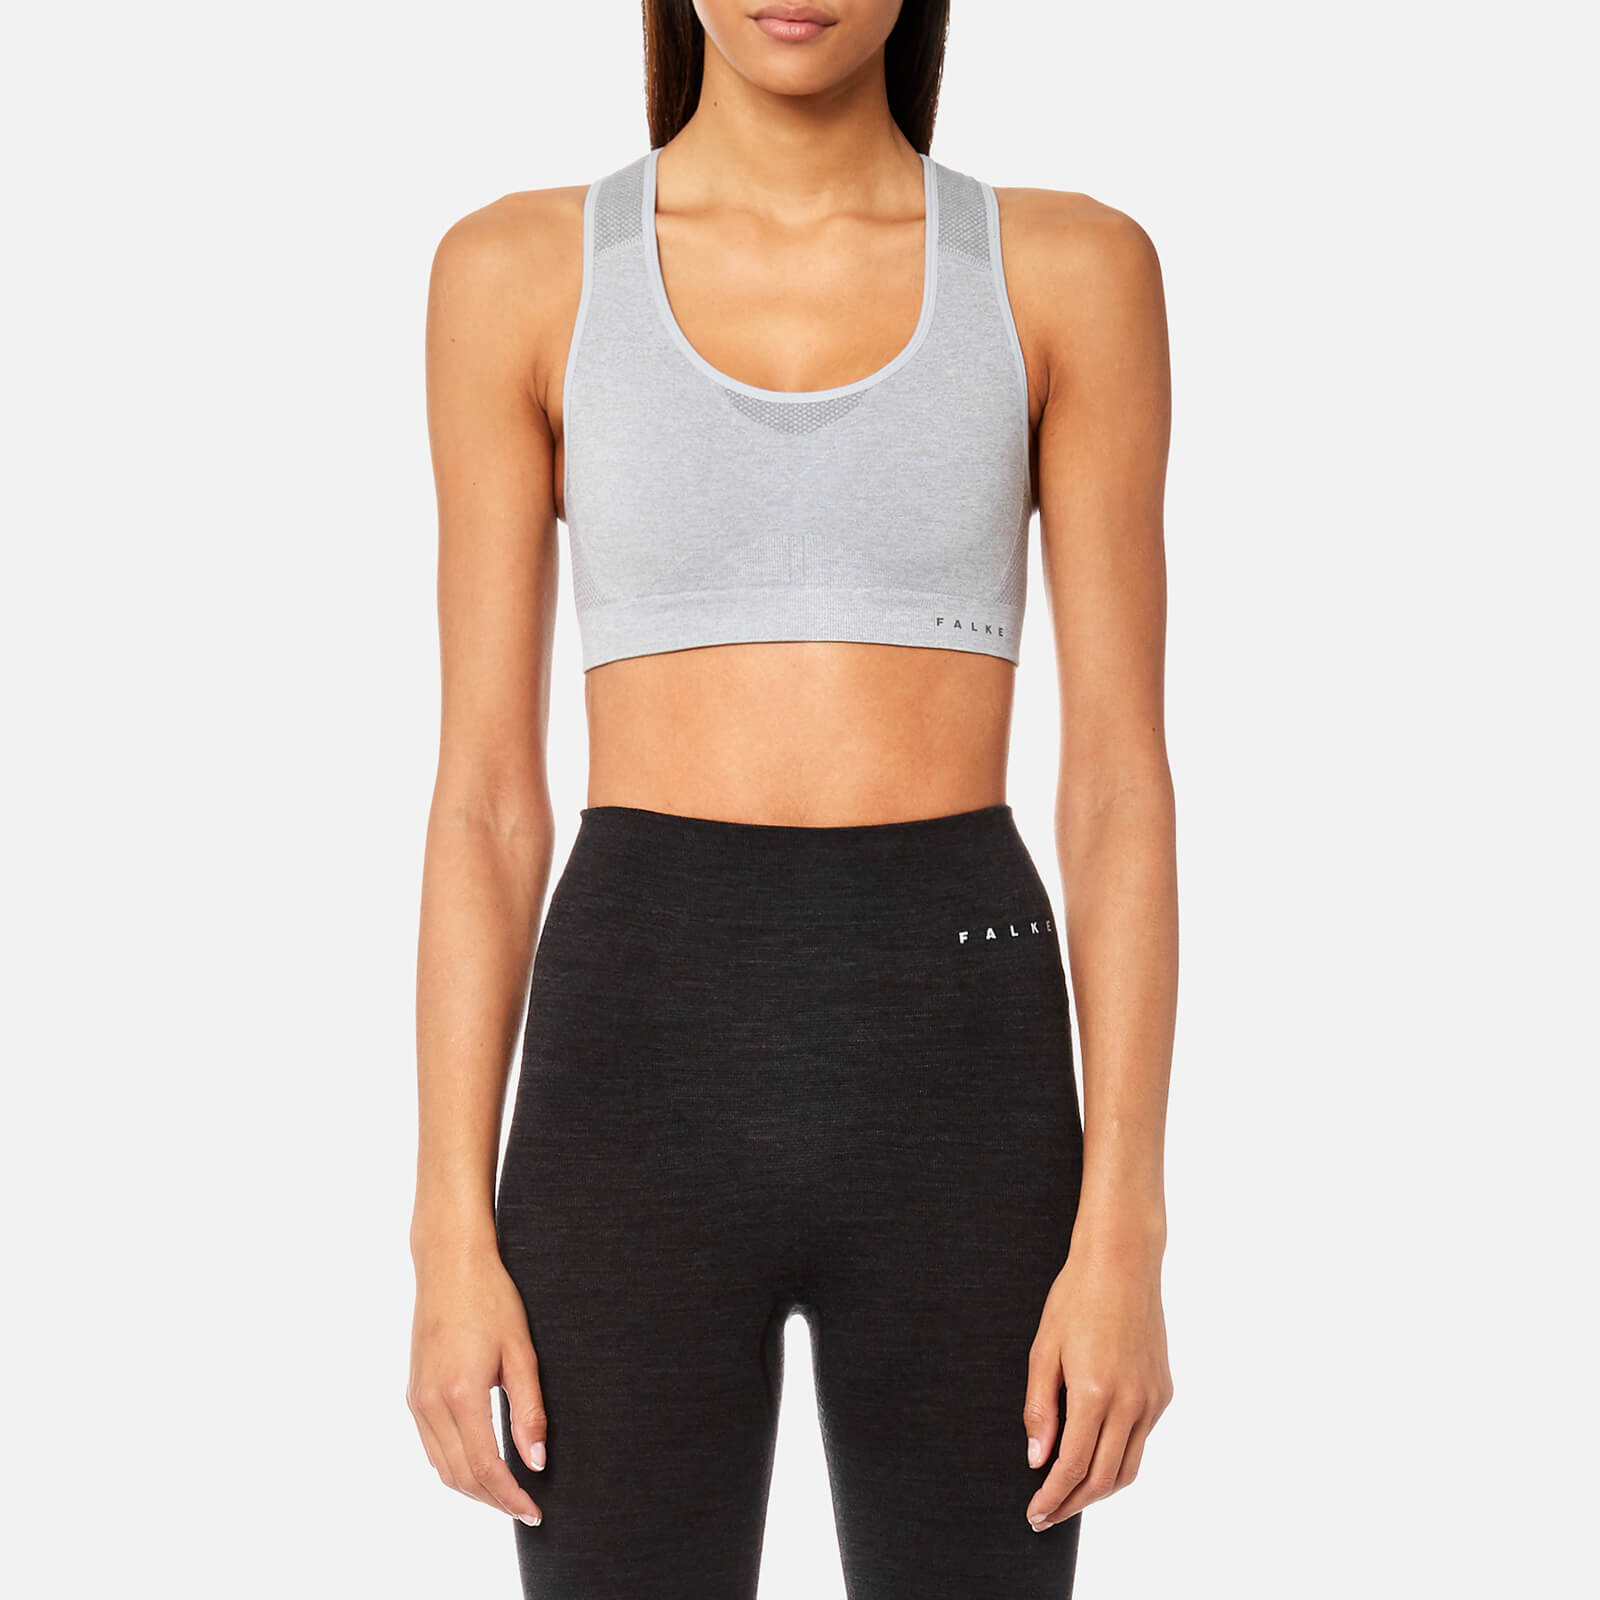 f73ab11c38d93 FALKE Ergonomic Sport System Women s Madison Low Support Sports Bra - Grey  Heather - Free UK Delivery over £50